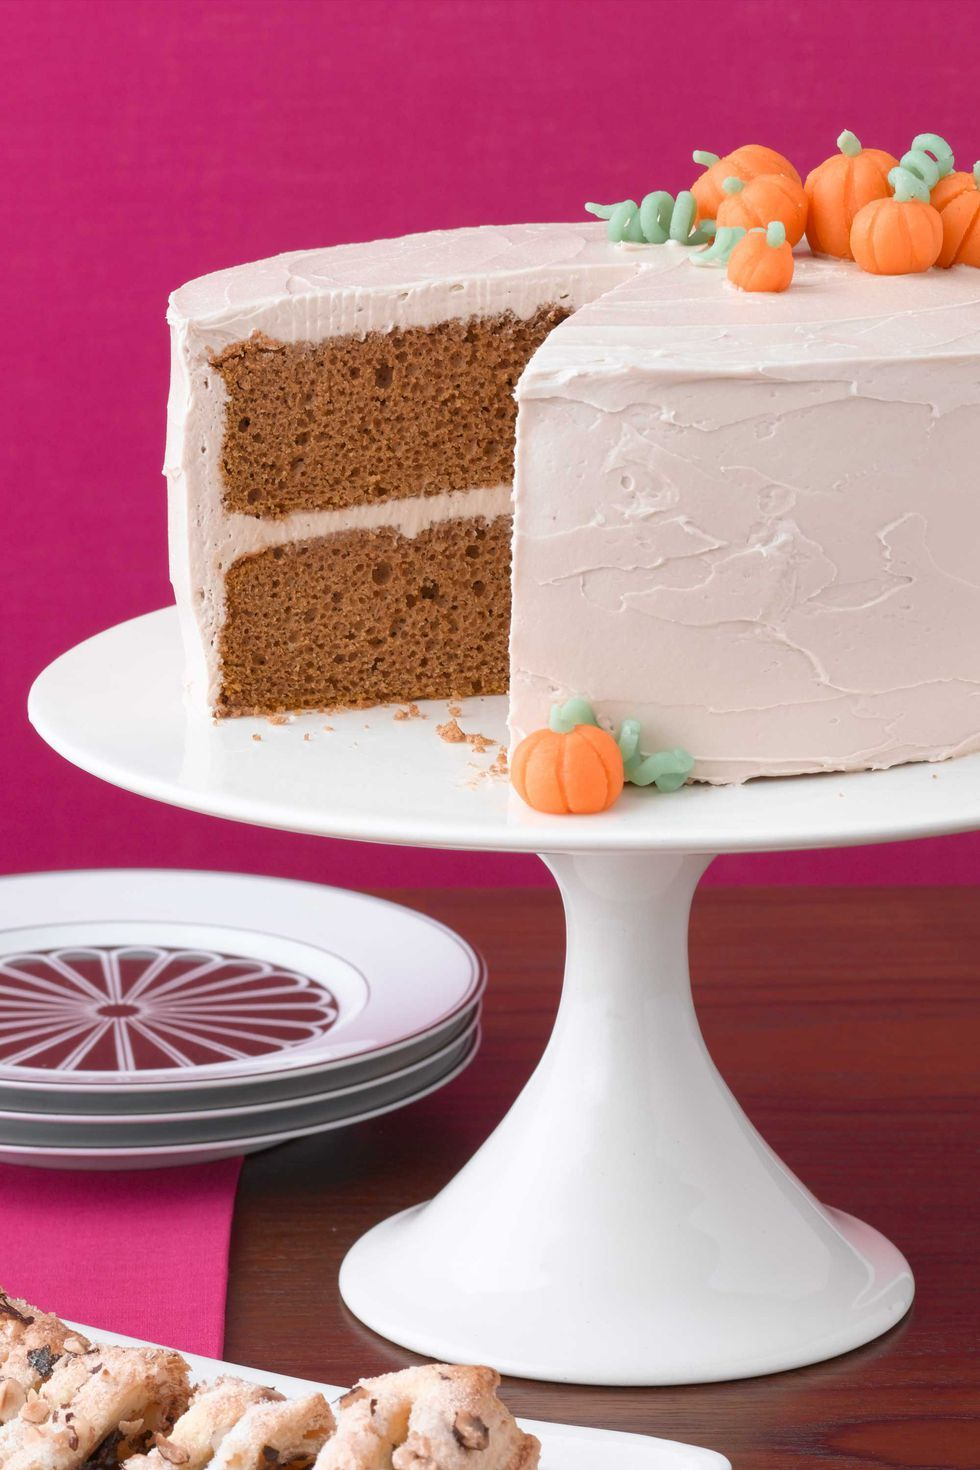 Cake Decorating Kit Pleasant To The Palate Baking Accs. & Cake Decorating Other Baking Accessories